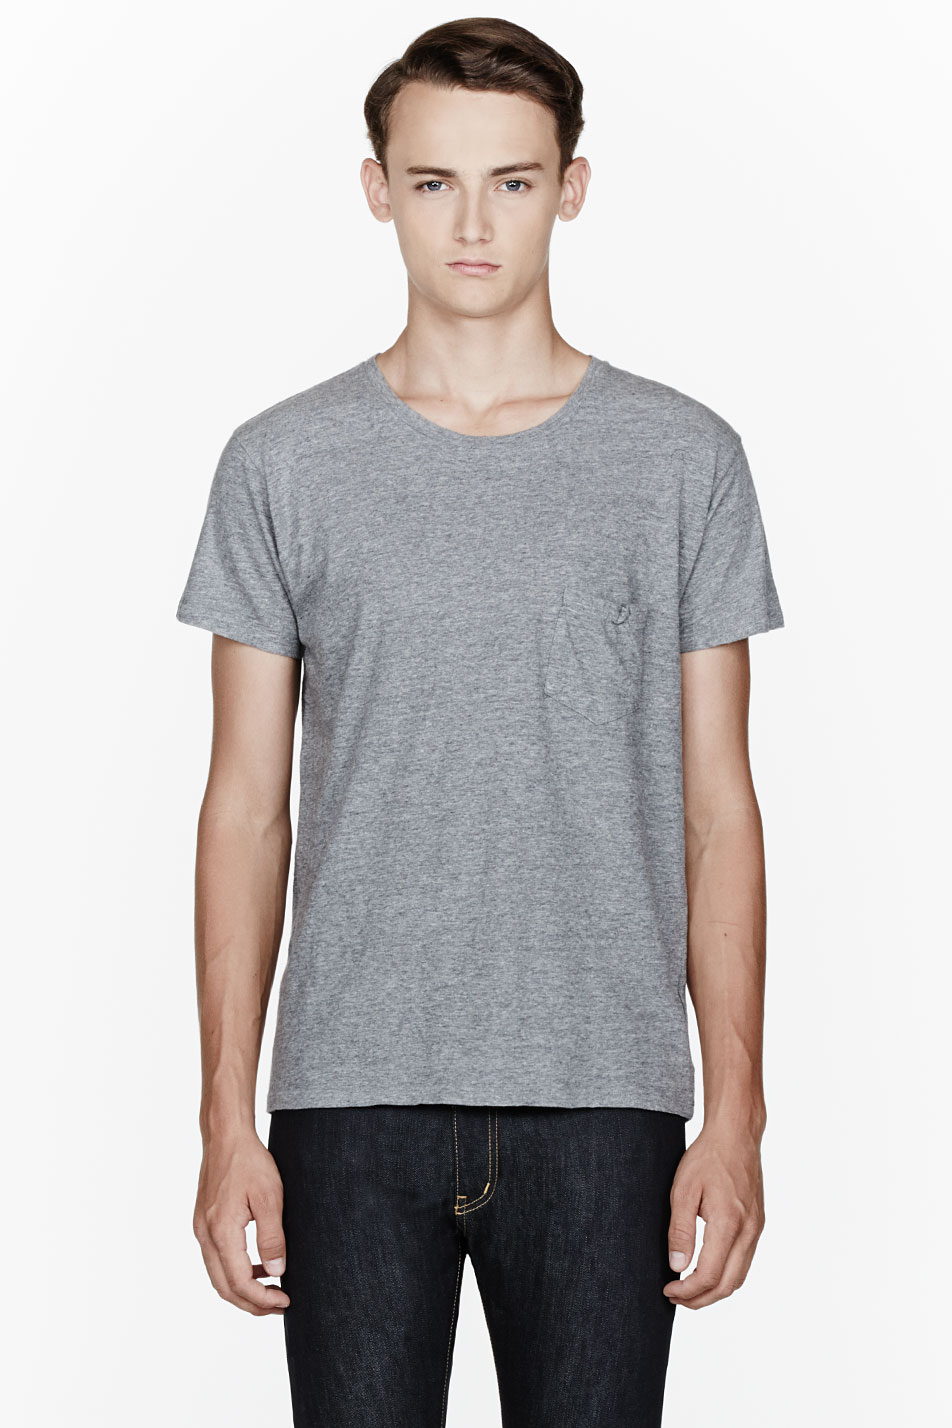 Saint laurent heather grey ruched pocket t shirt in gray Mens heather grey t shirt